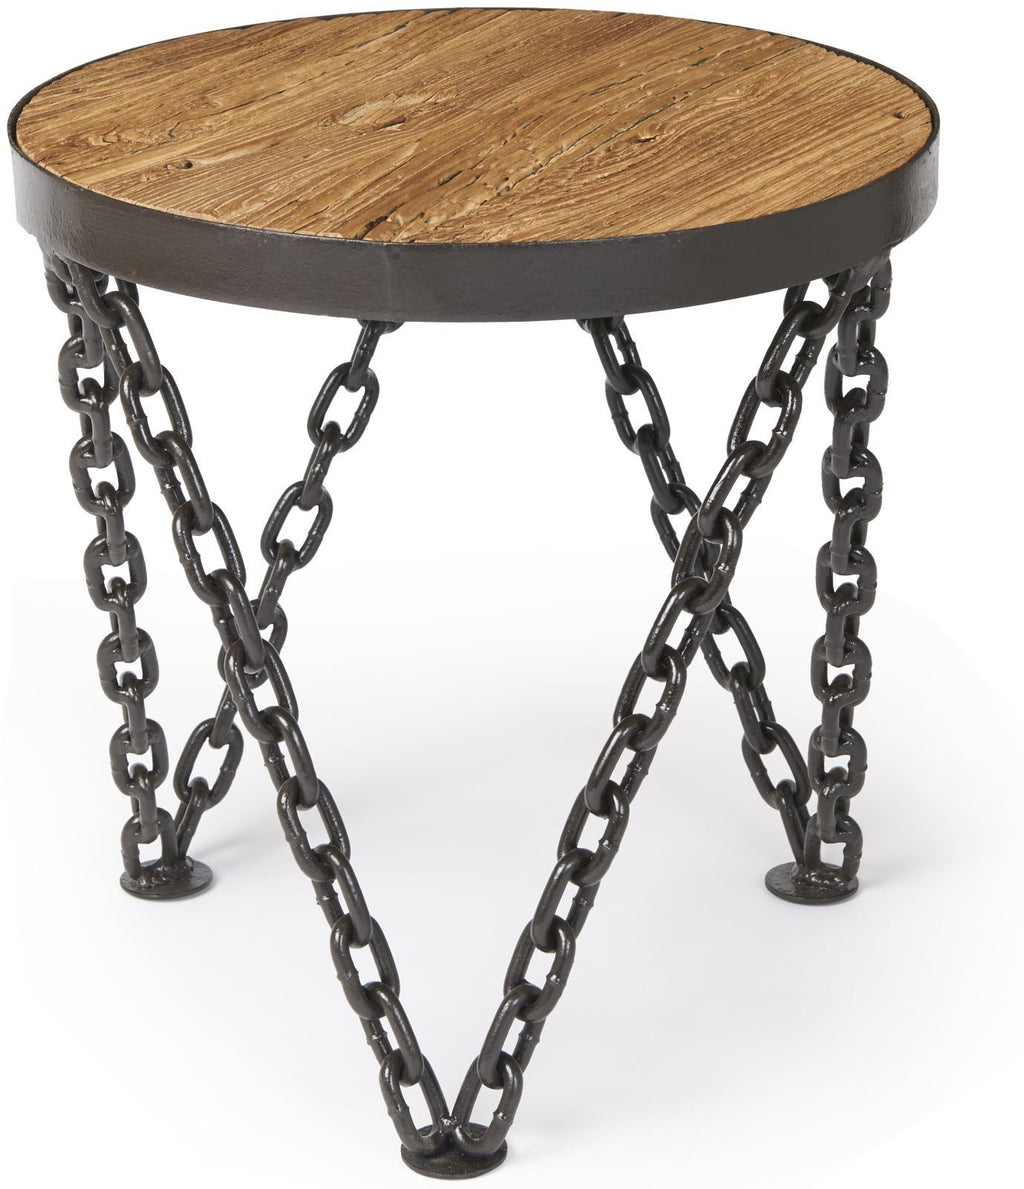 Tuscany Round Wine Table with Chain Legs